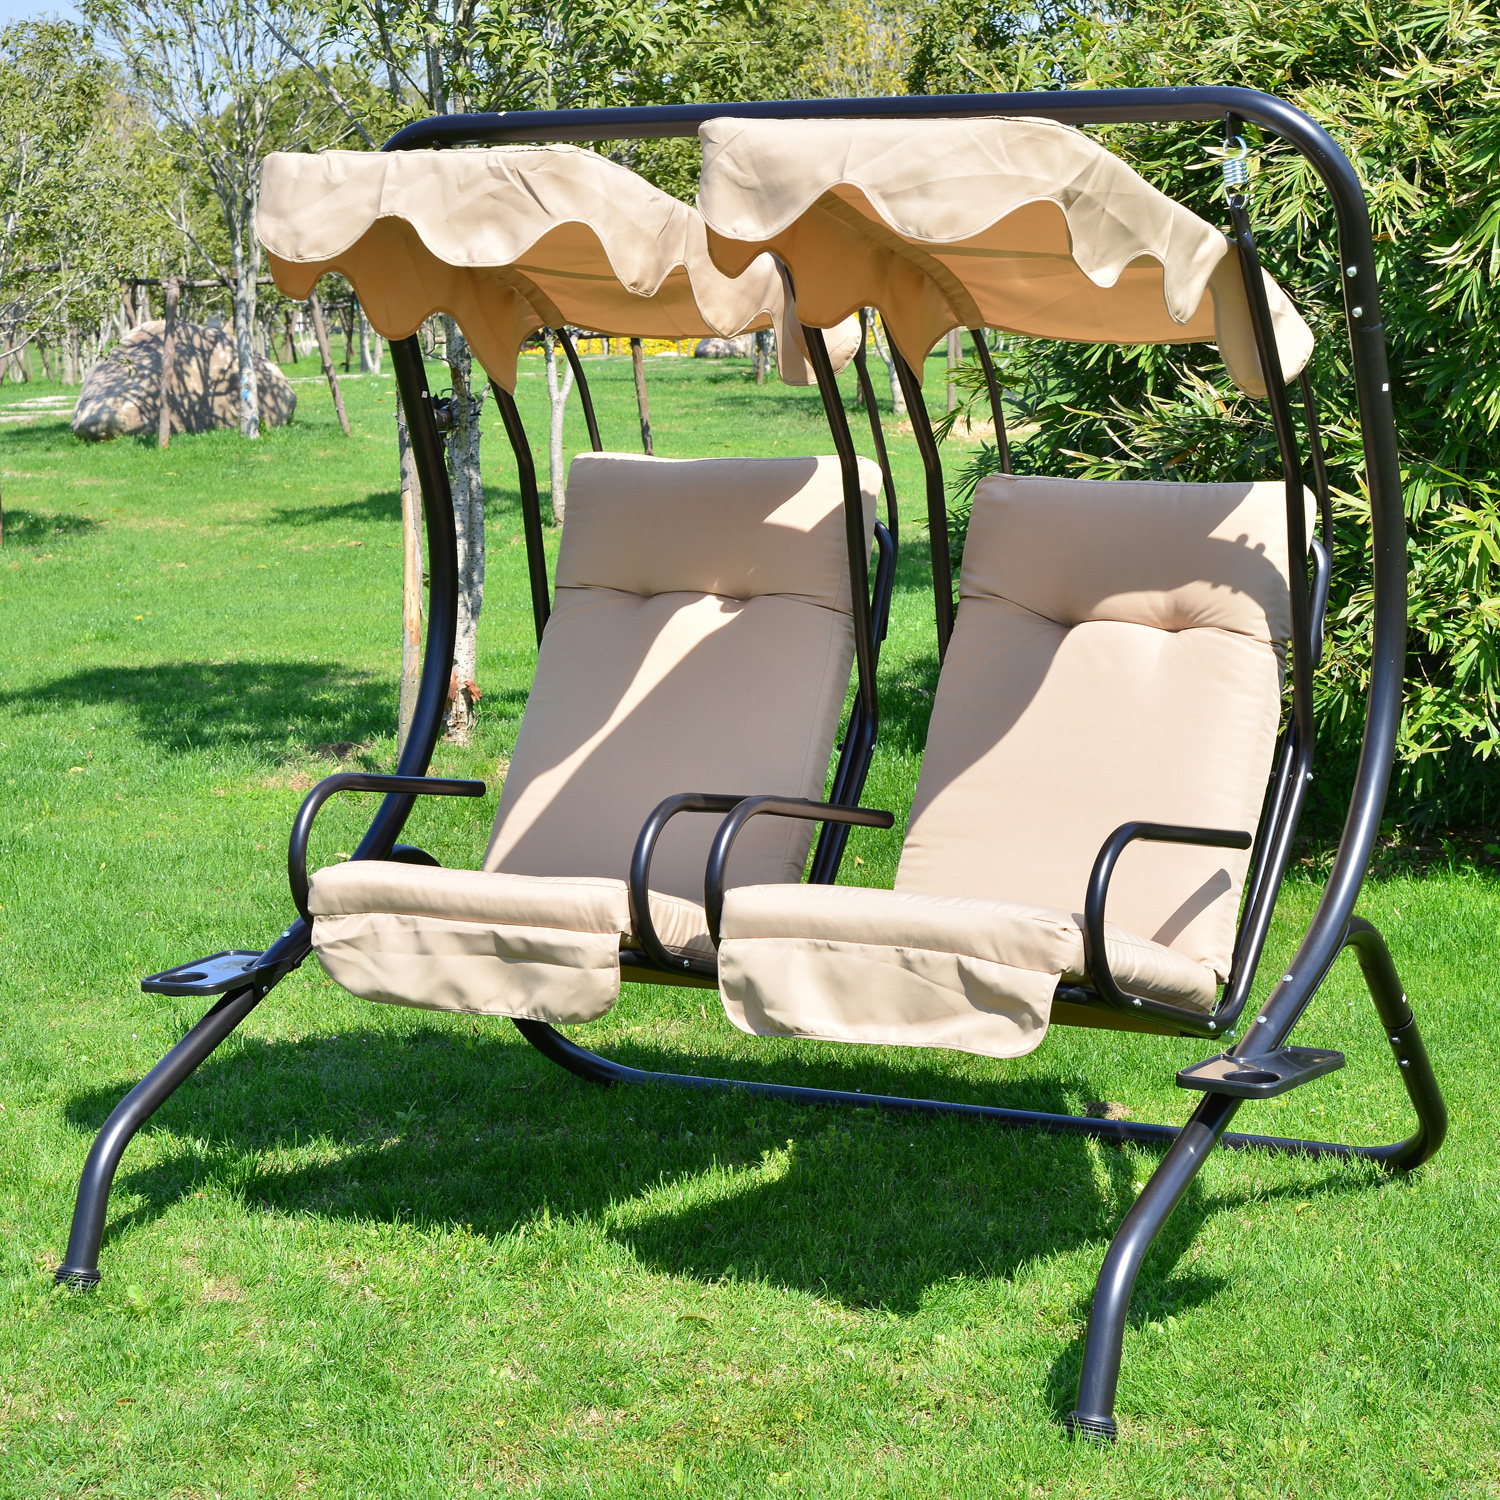 Outsunny Outdoor Garden Patio Covered Double Swing W/ Frame   Sand